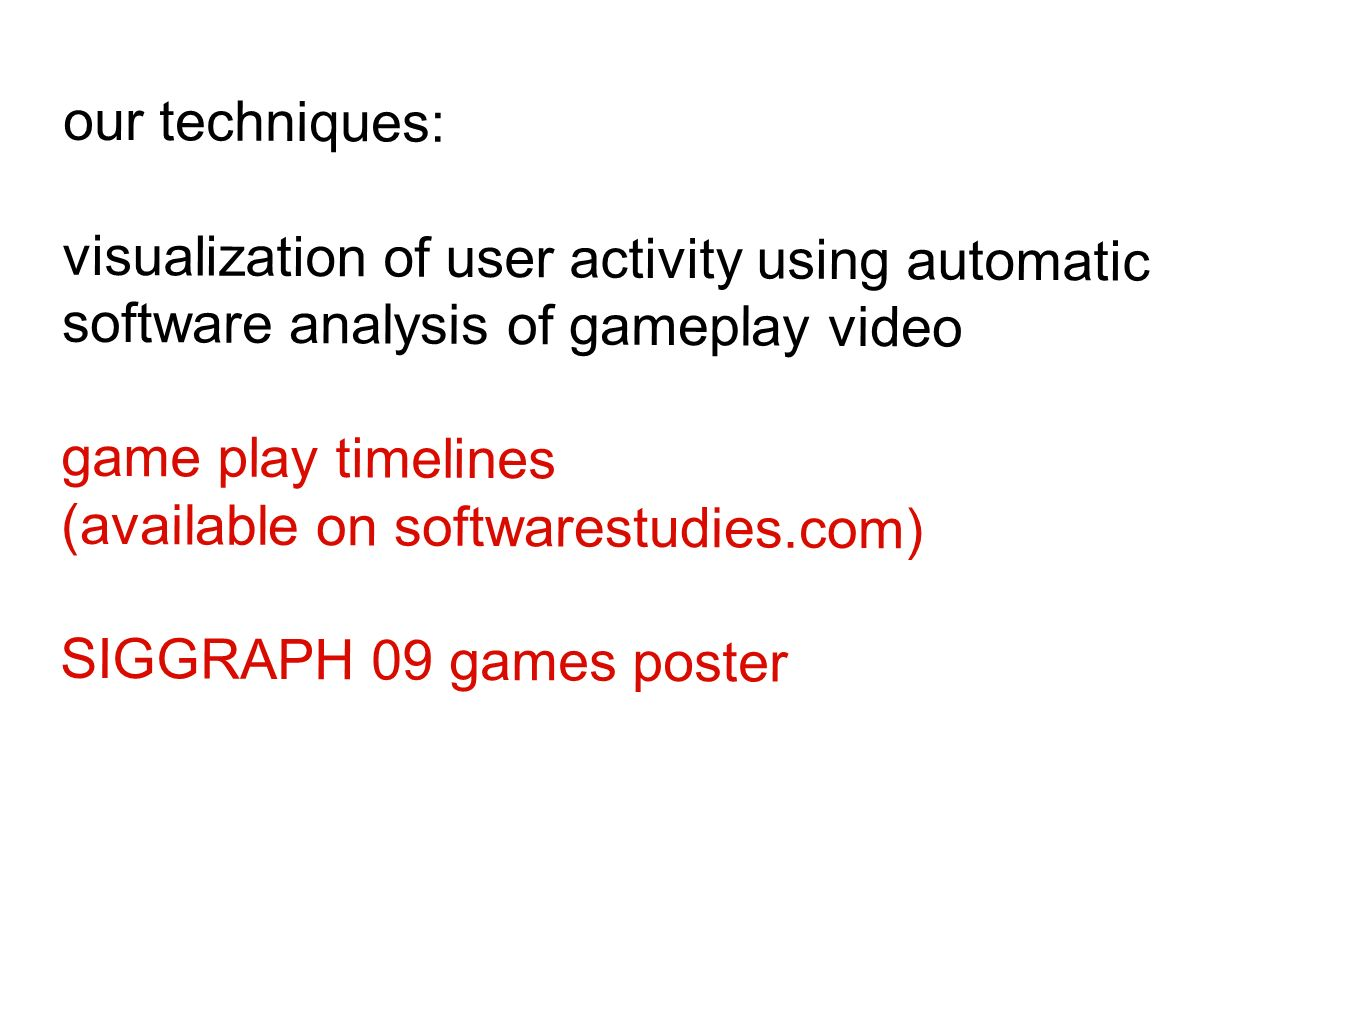 our techniques: visualization of user activity using automatic software analysis of gameplay video game play timelines (available on softwarestudies.c